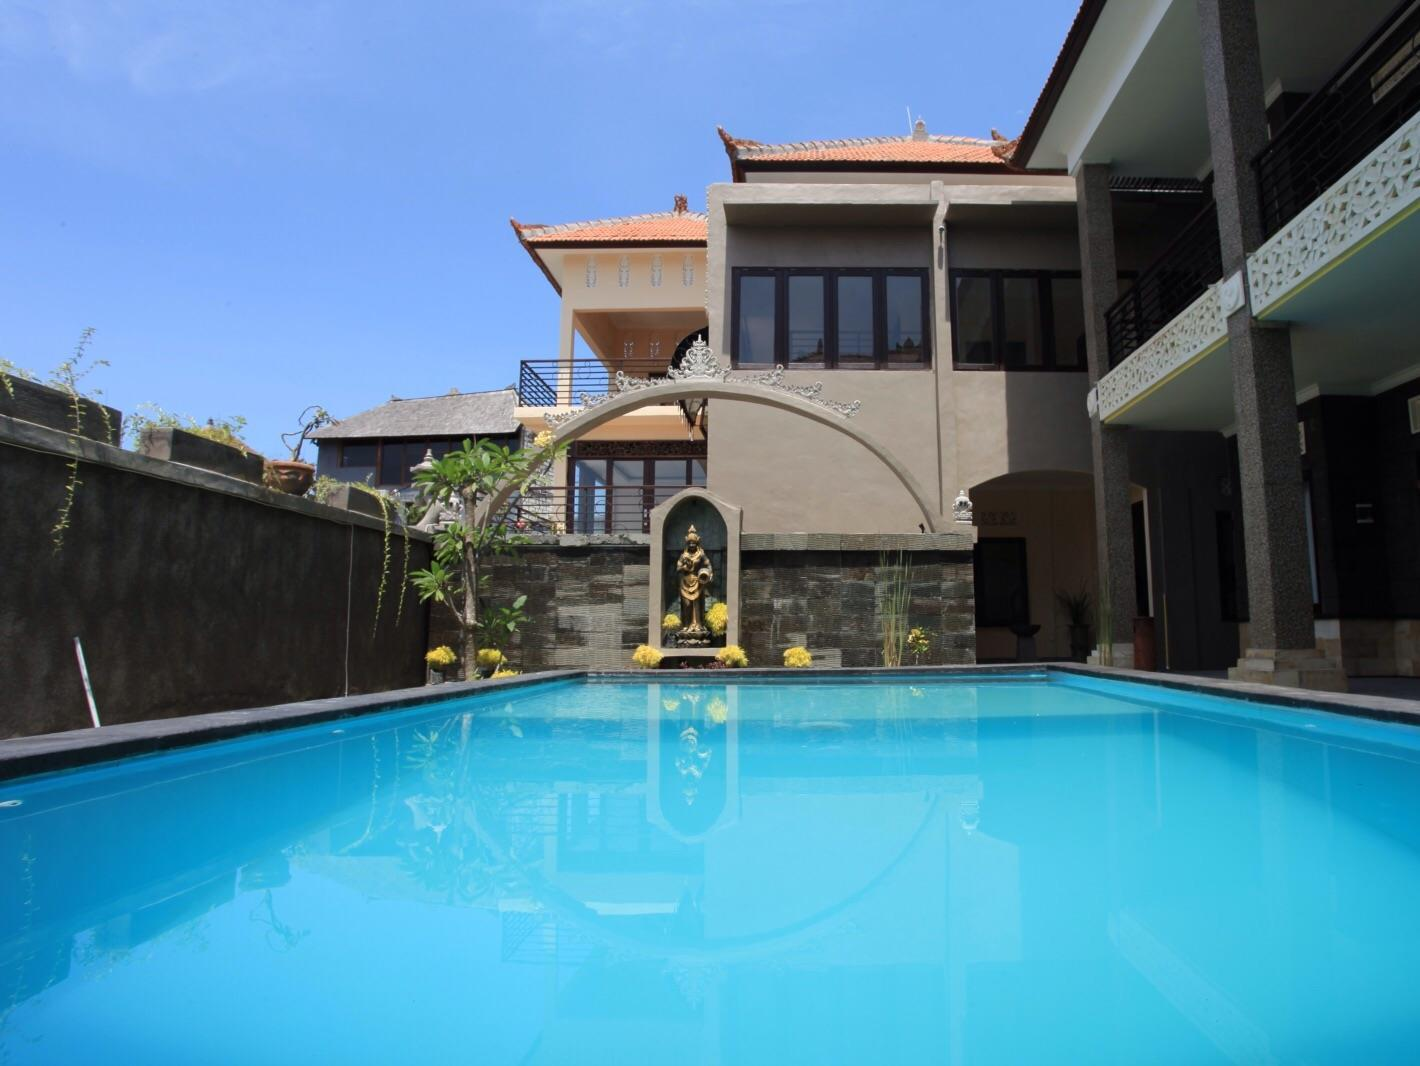 Omah Doger Guest House